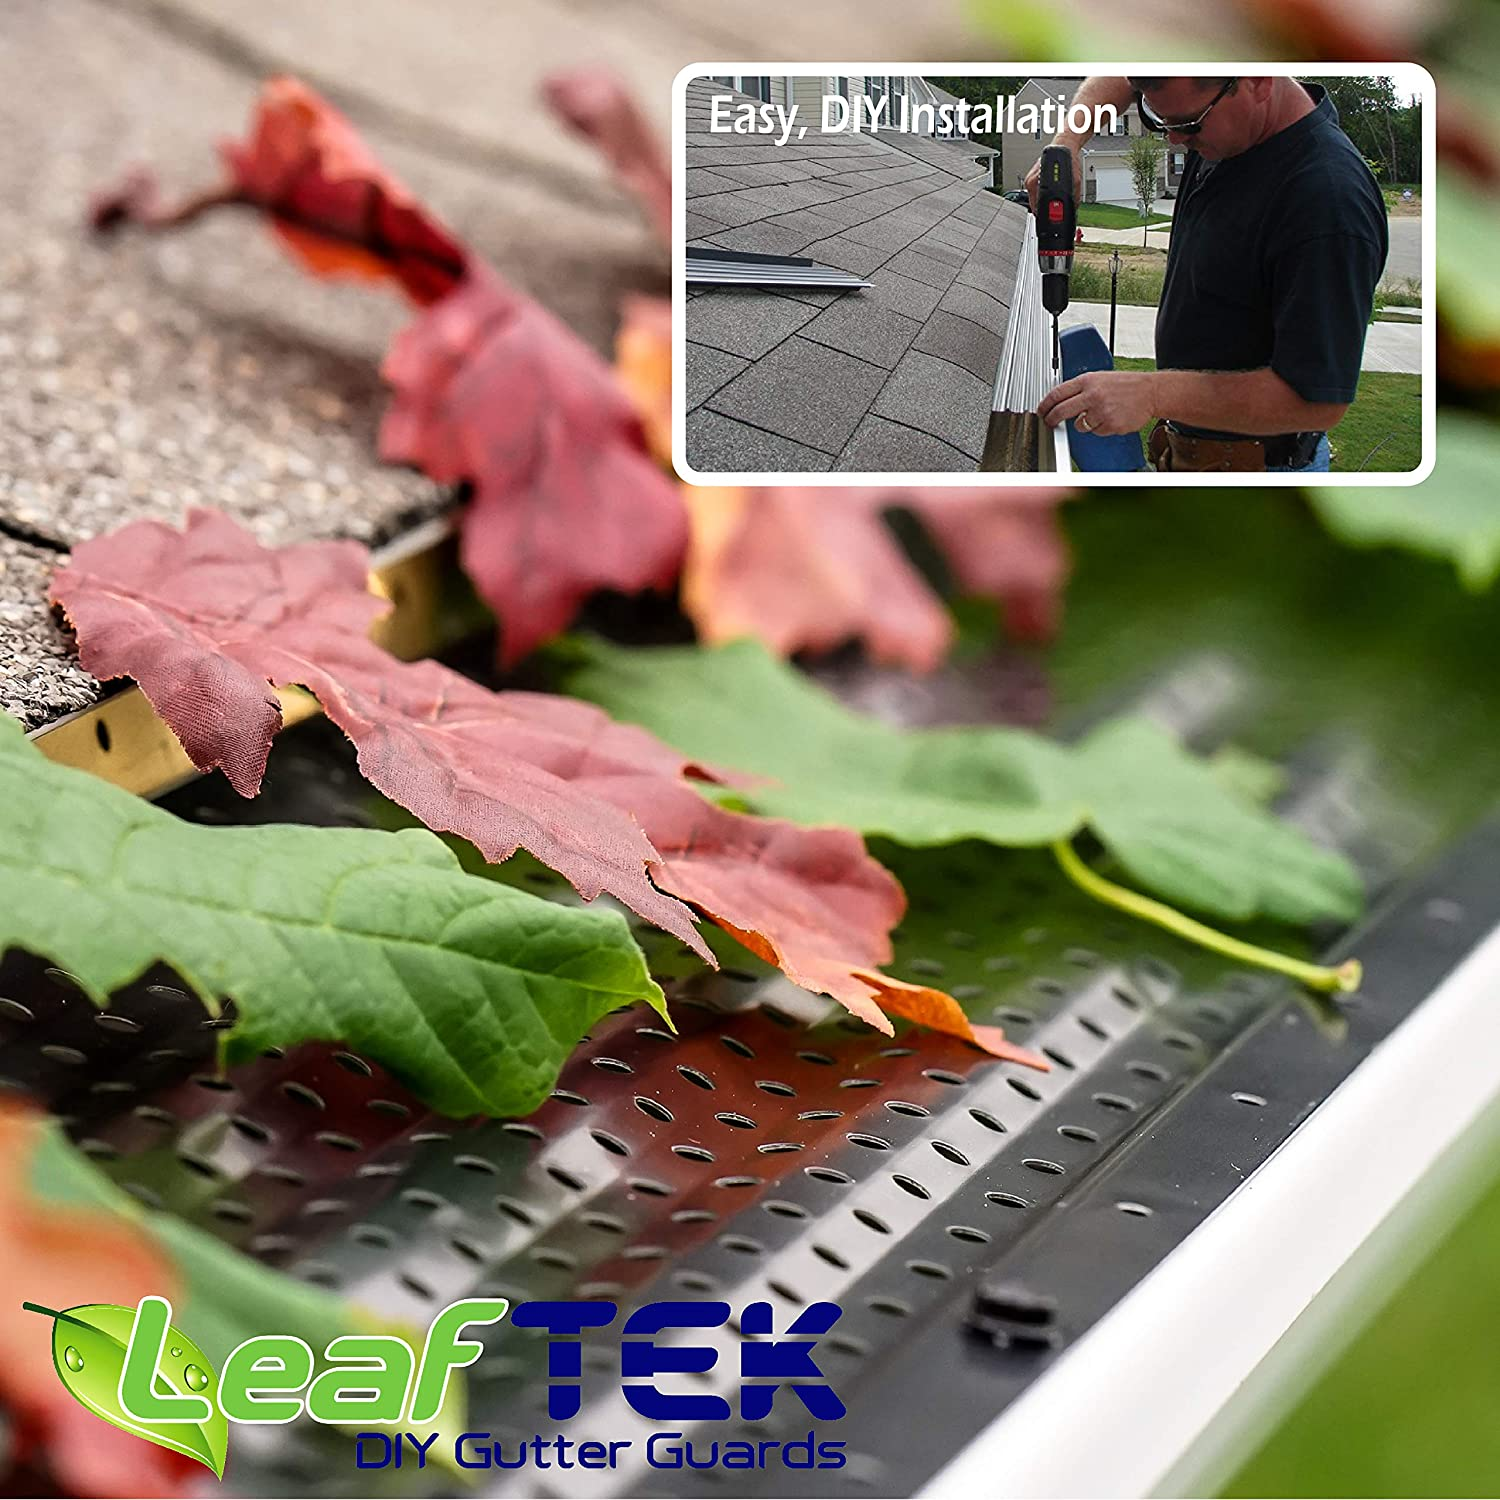 LeafTek Full Size 48 Sample Kit in White Includes Sample Screws /& Measuring Info Sample Sections for 5 /& 6 Gutters